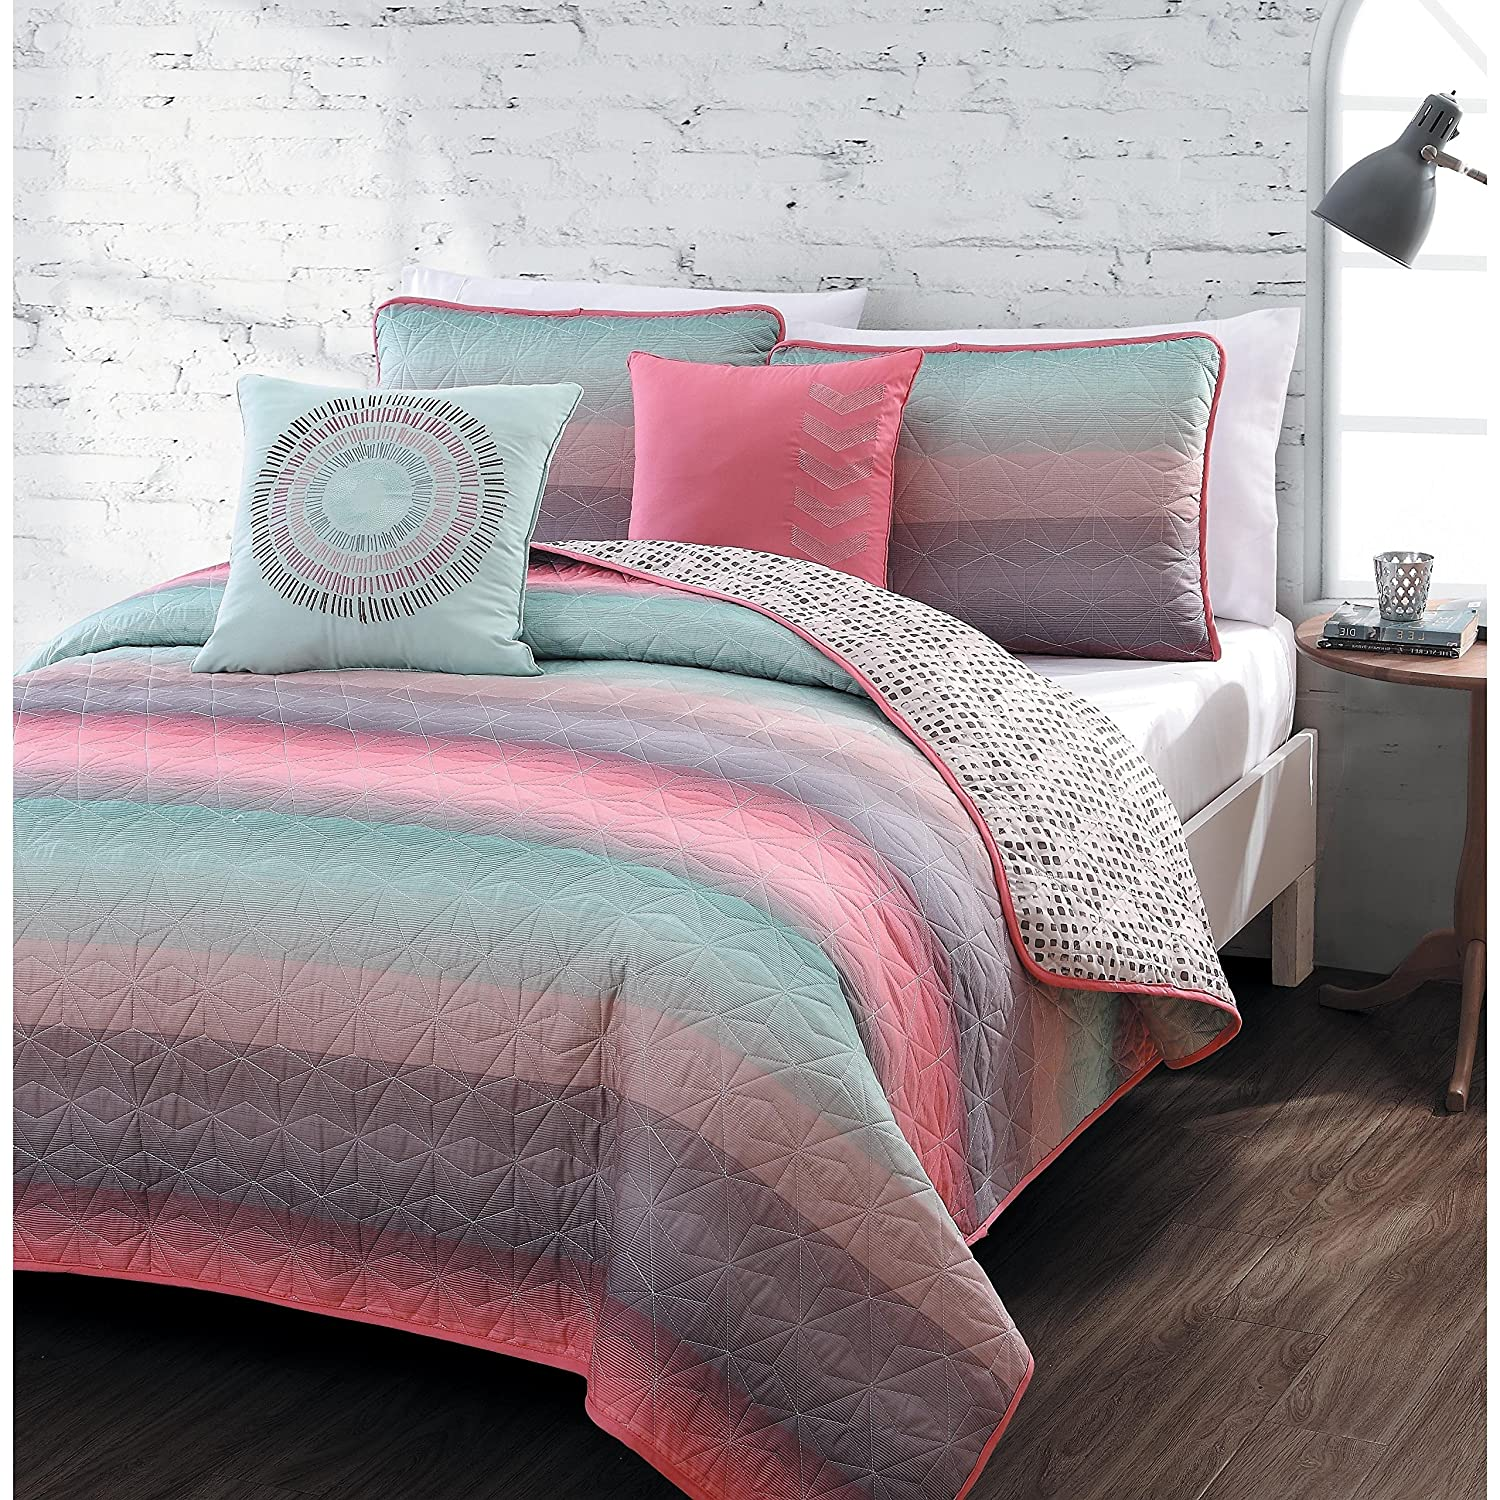 5-piece Queen Quilt Set for Girls Beautiful Coral Pink, Teal Blue, Violet, Colorful, Microfiber Bedding for Teens or Students, Fusion Starburst Stripe Across Pattern